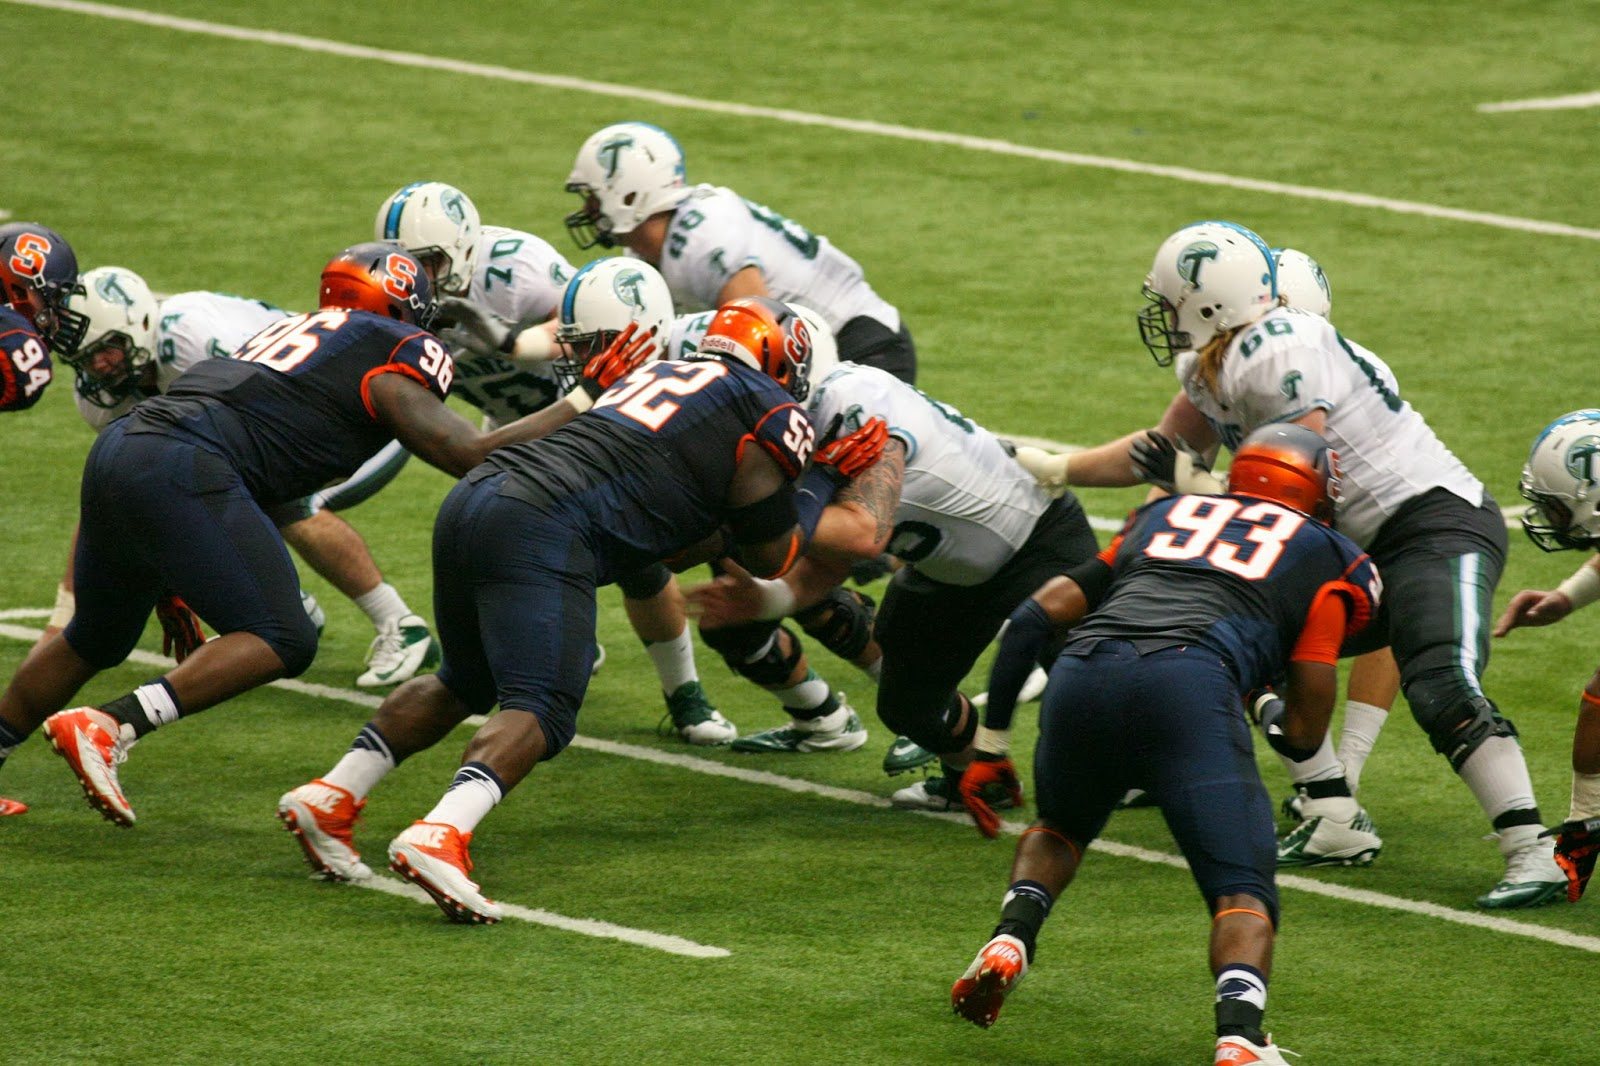 Syracuse routs Tulane 52-17